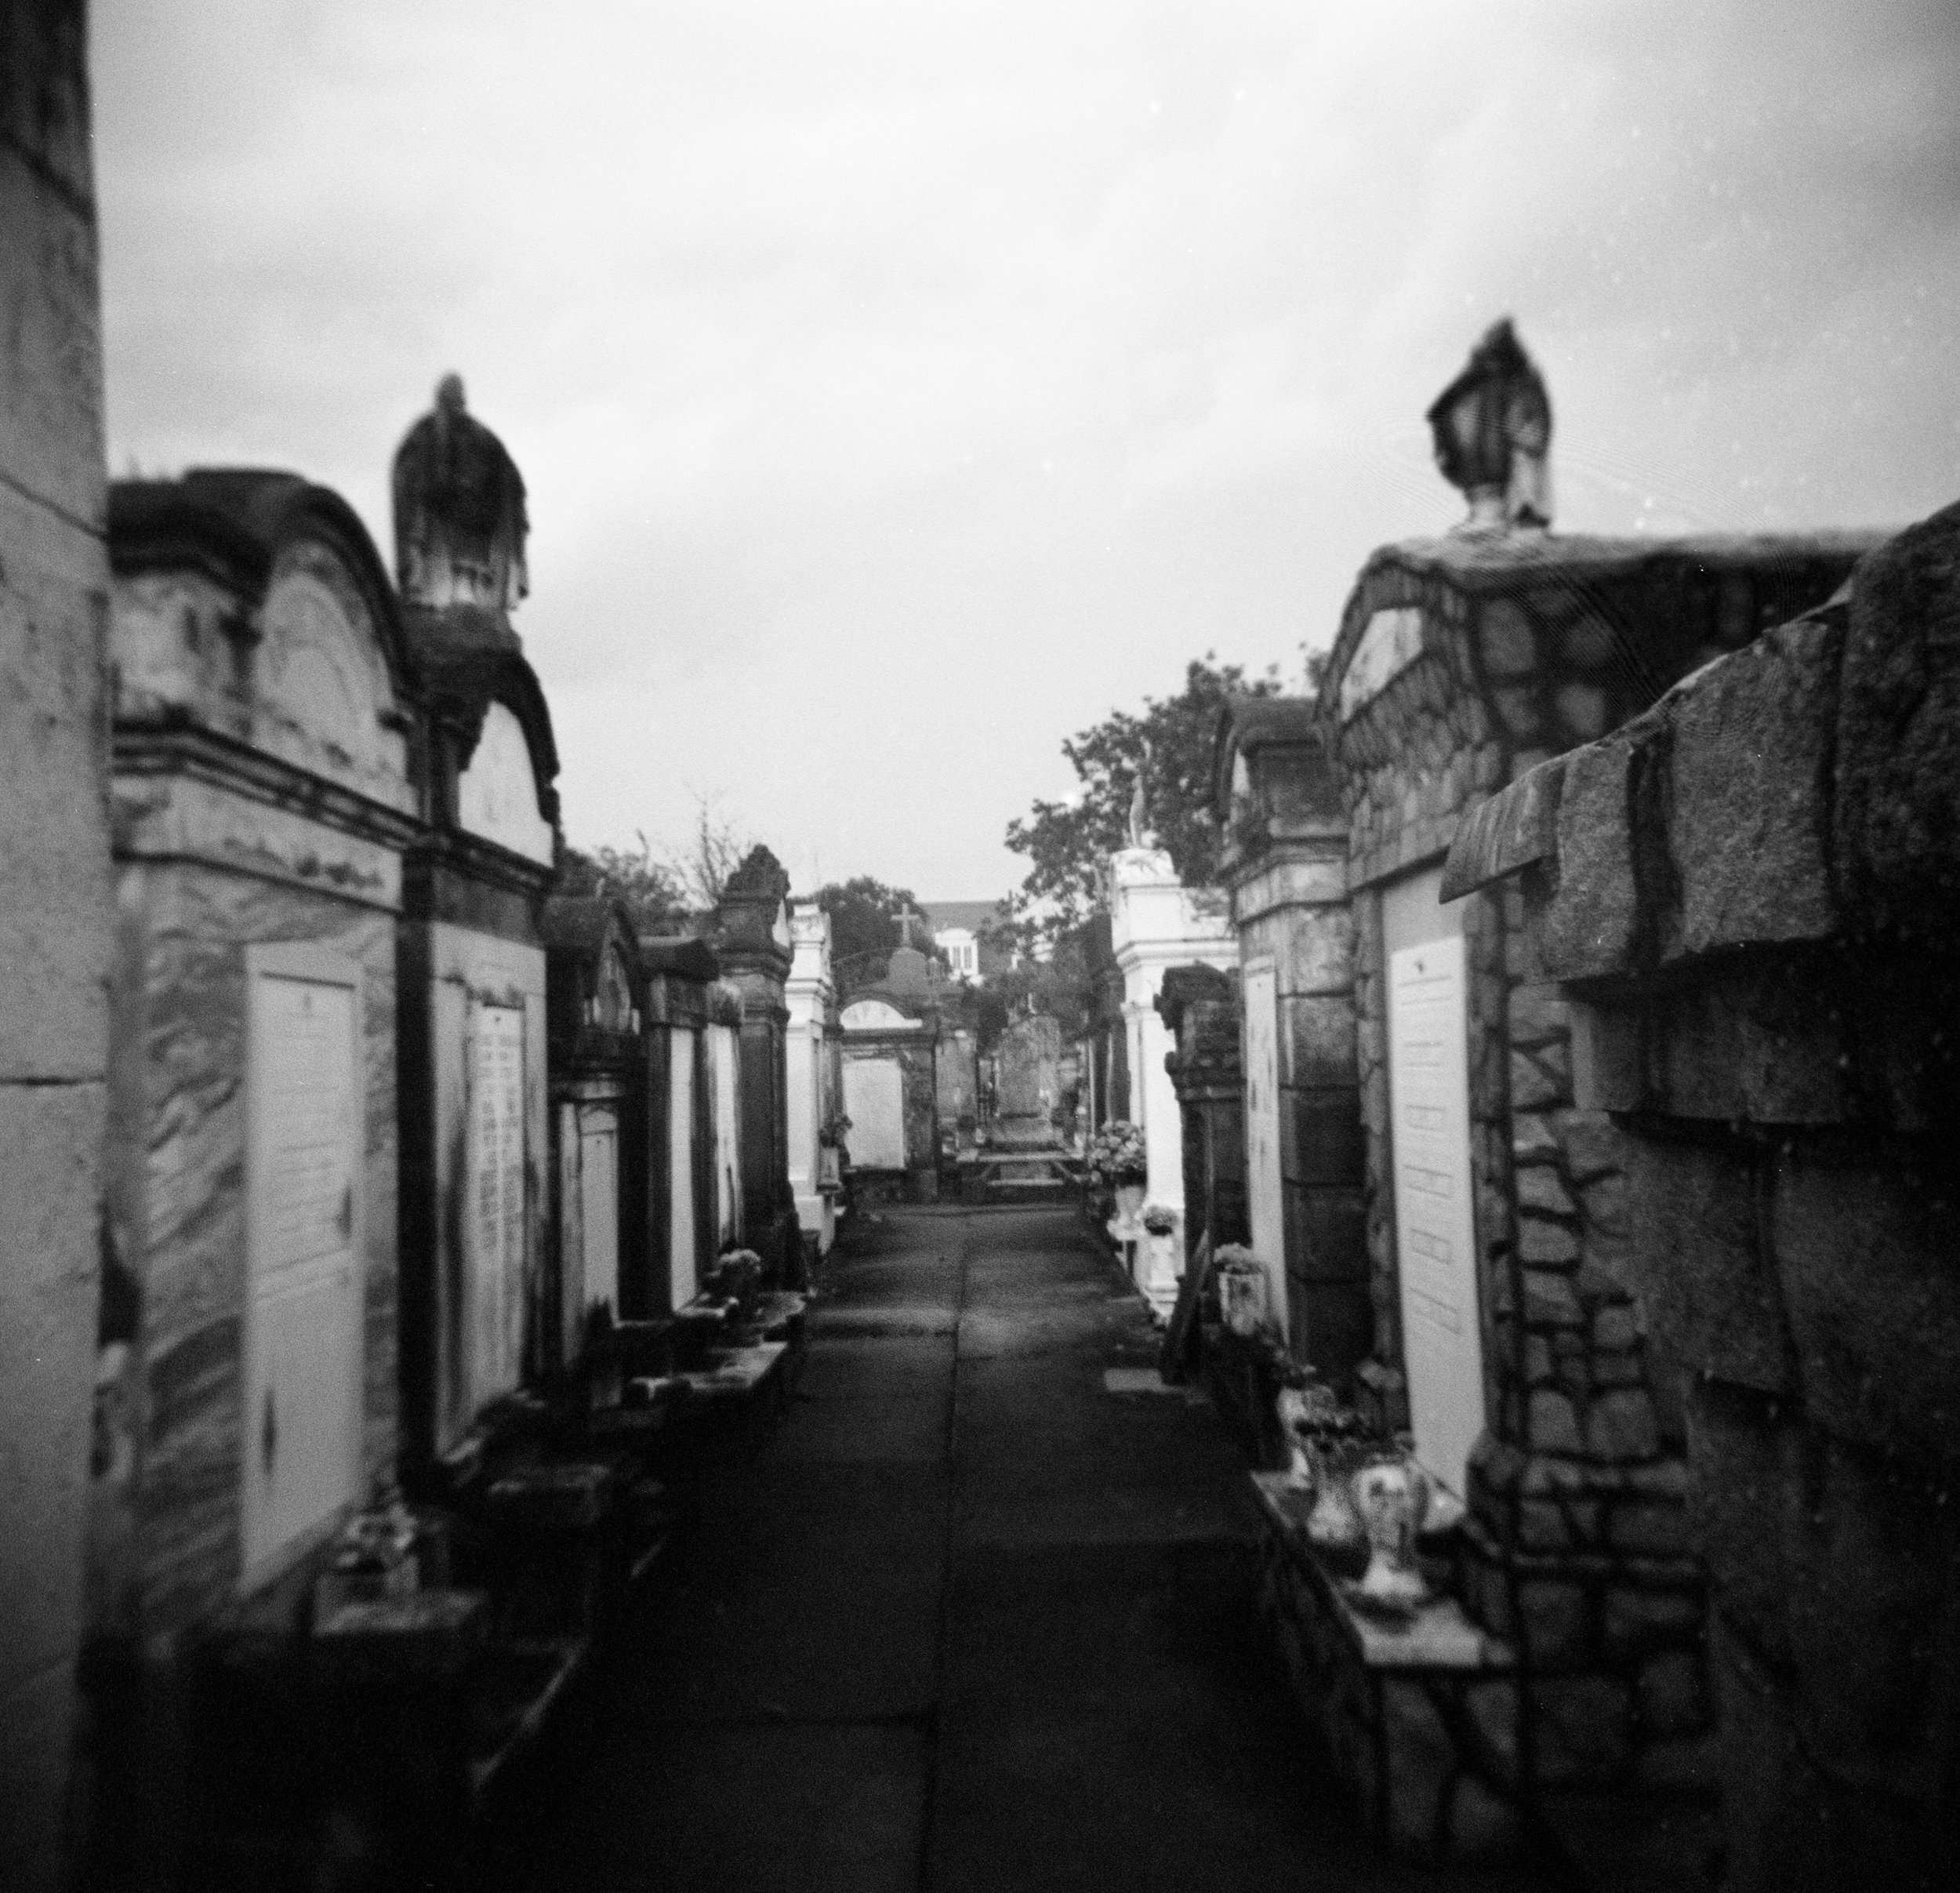 Burial Rows on Film